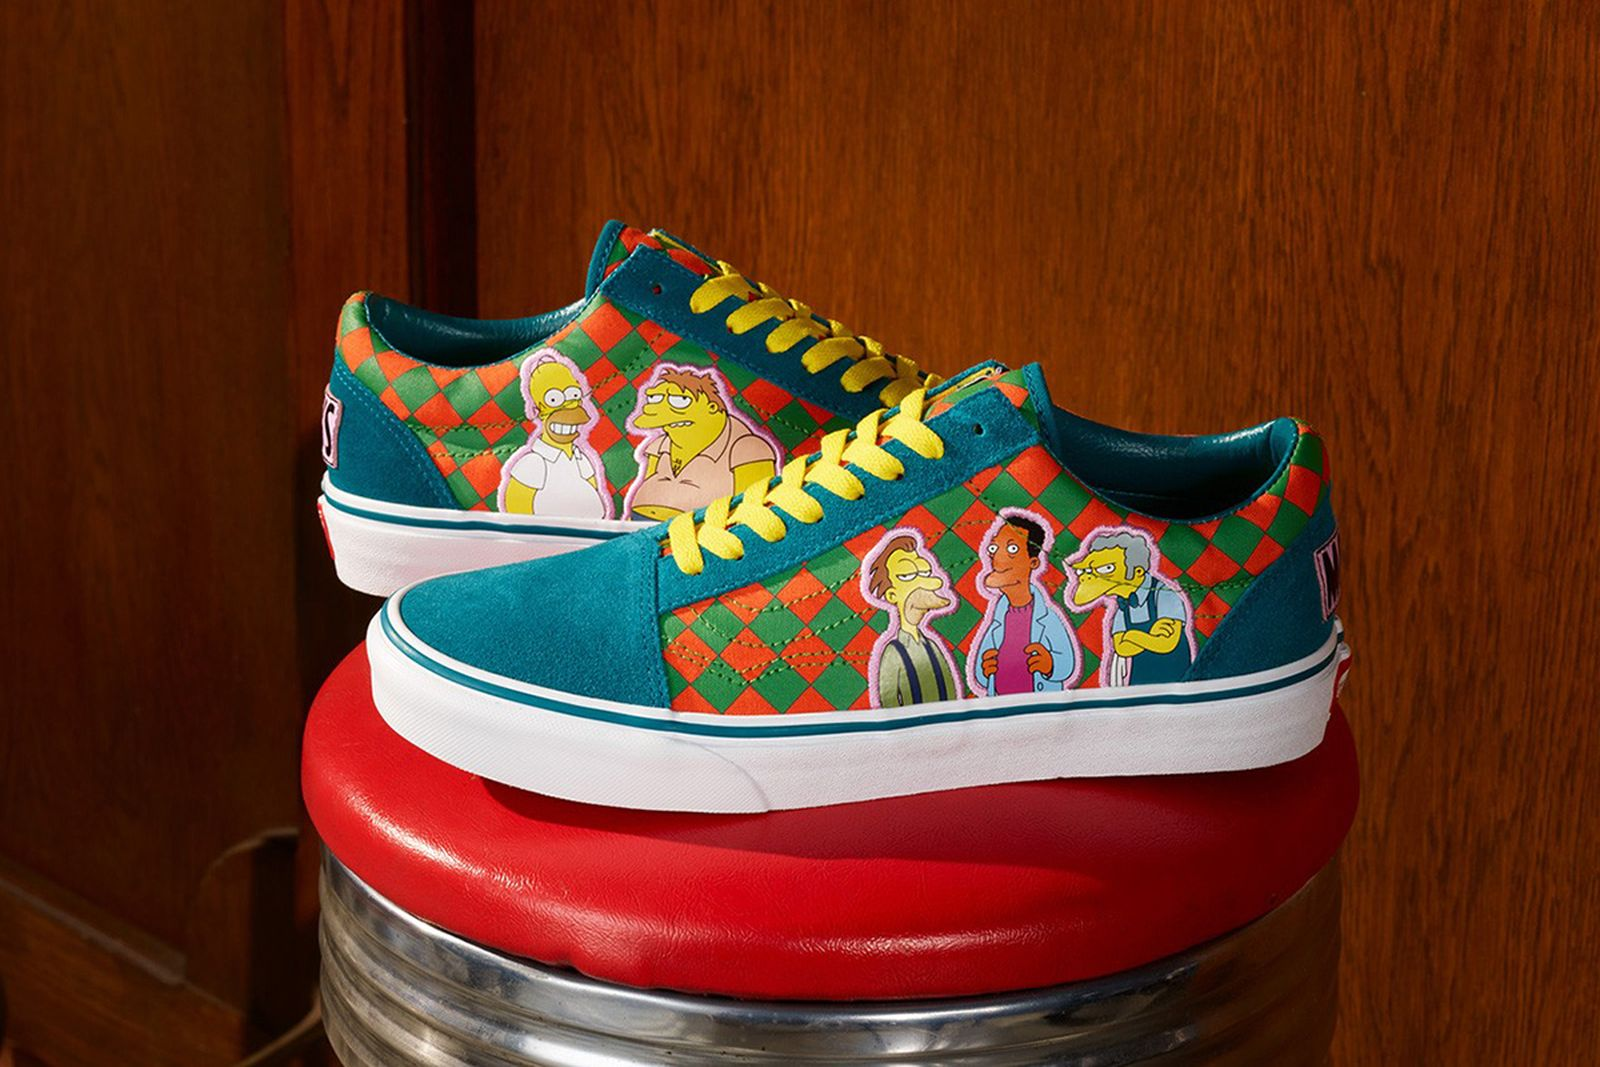 Vans The Simpsons sneakers